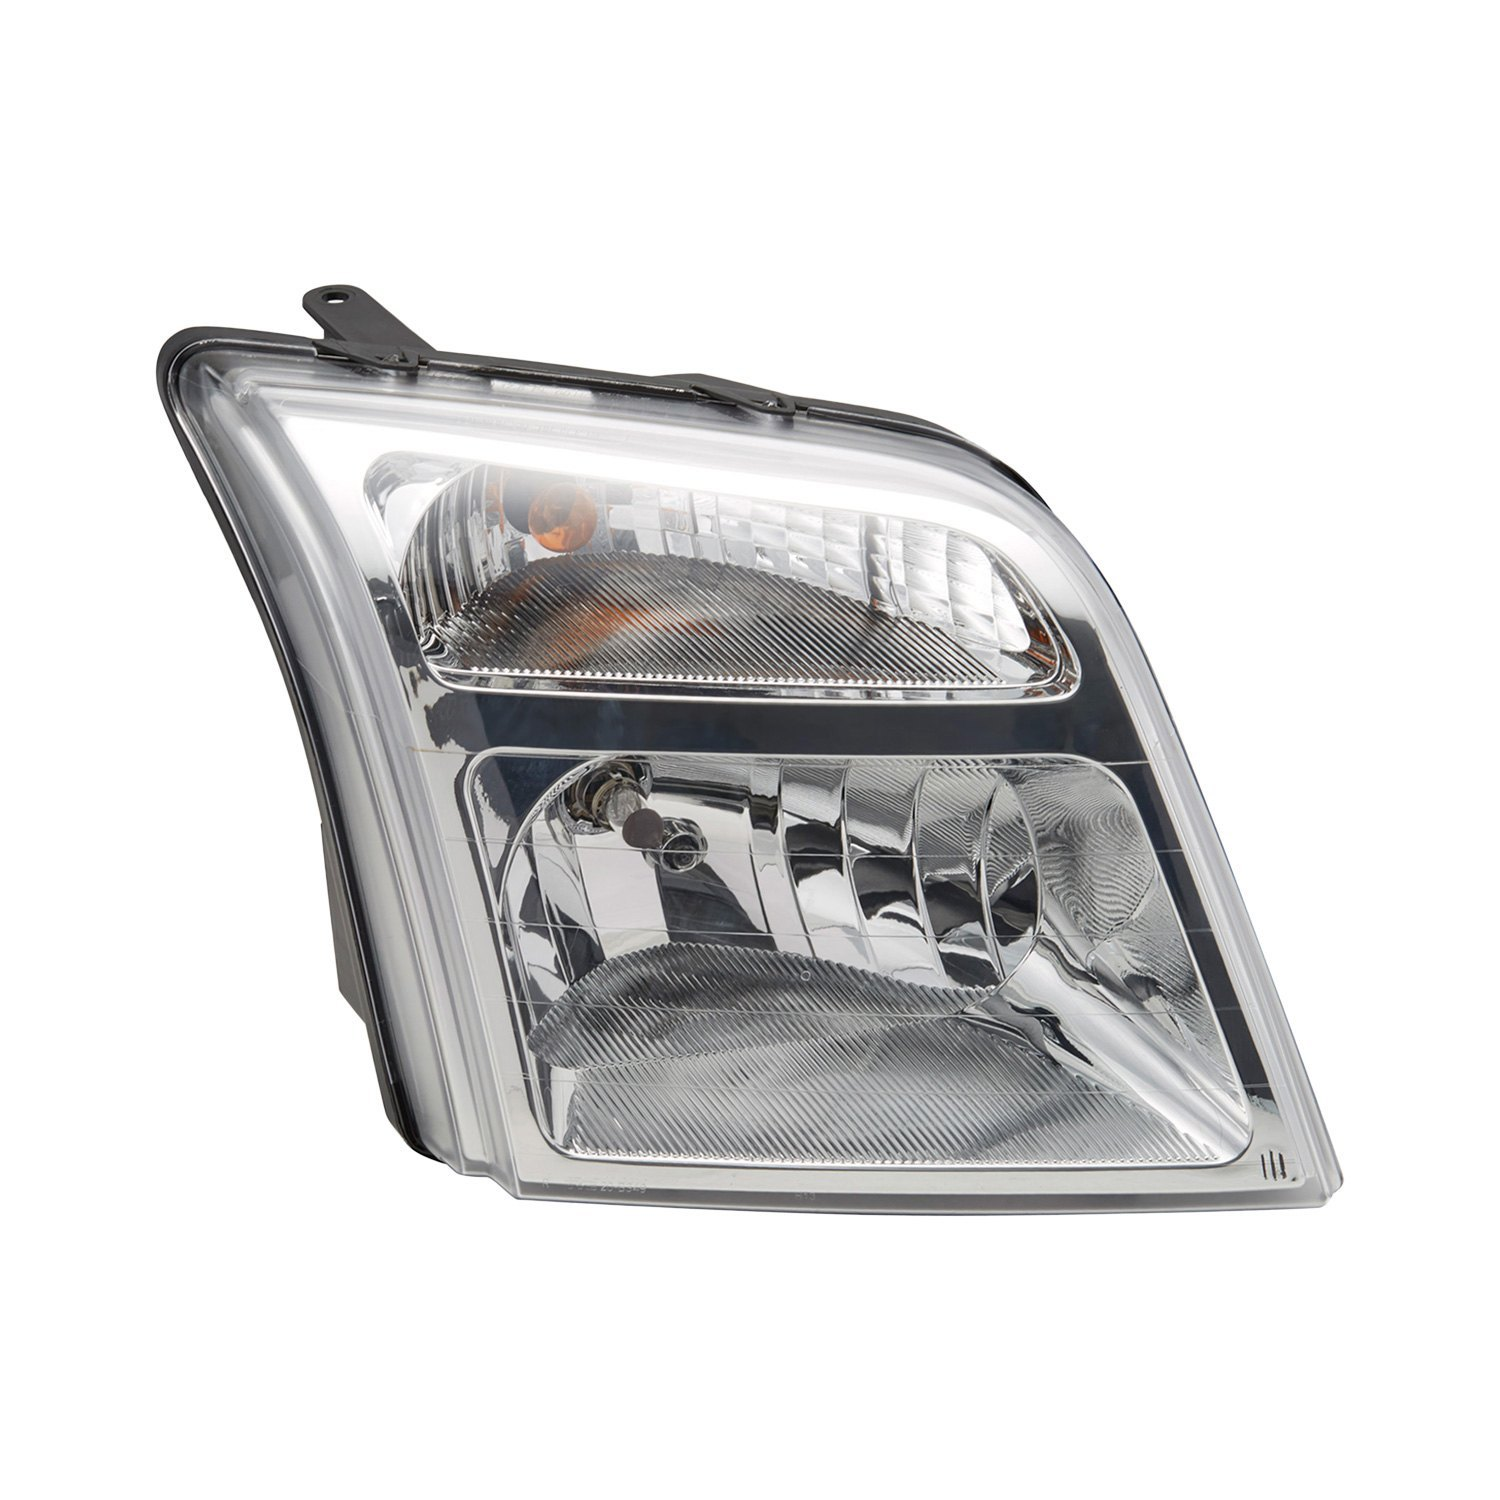 Ford Transit Connect 2010-2013 Replacement Headlight